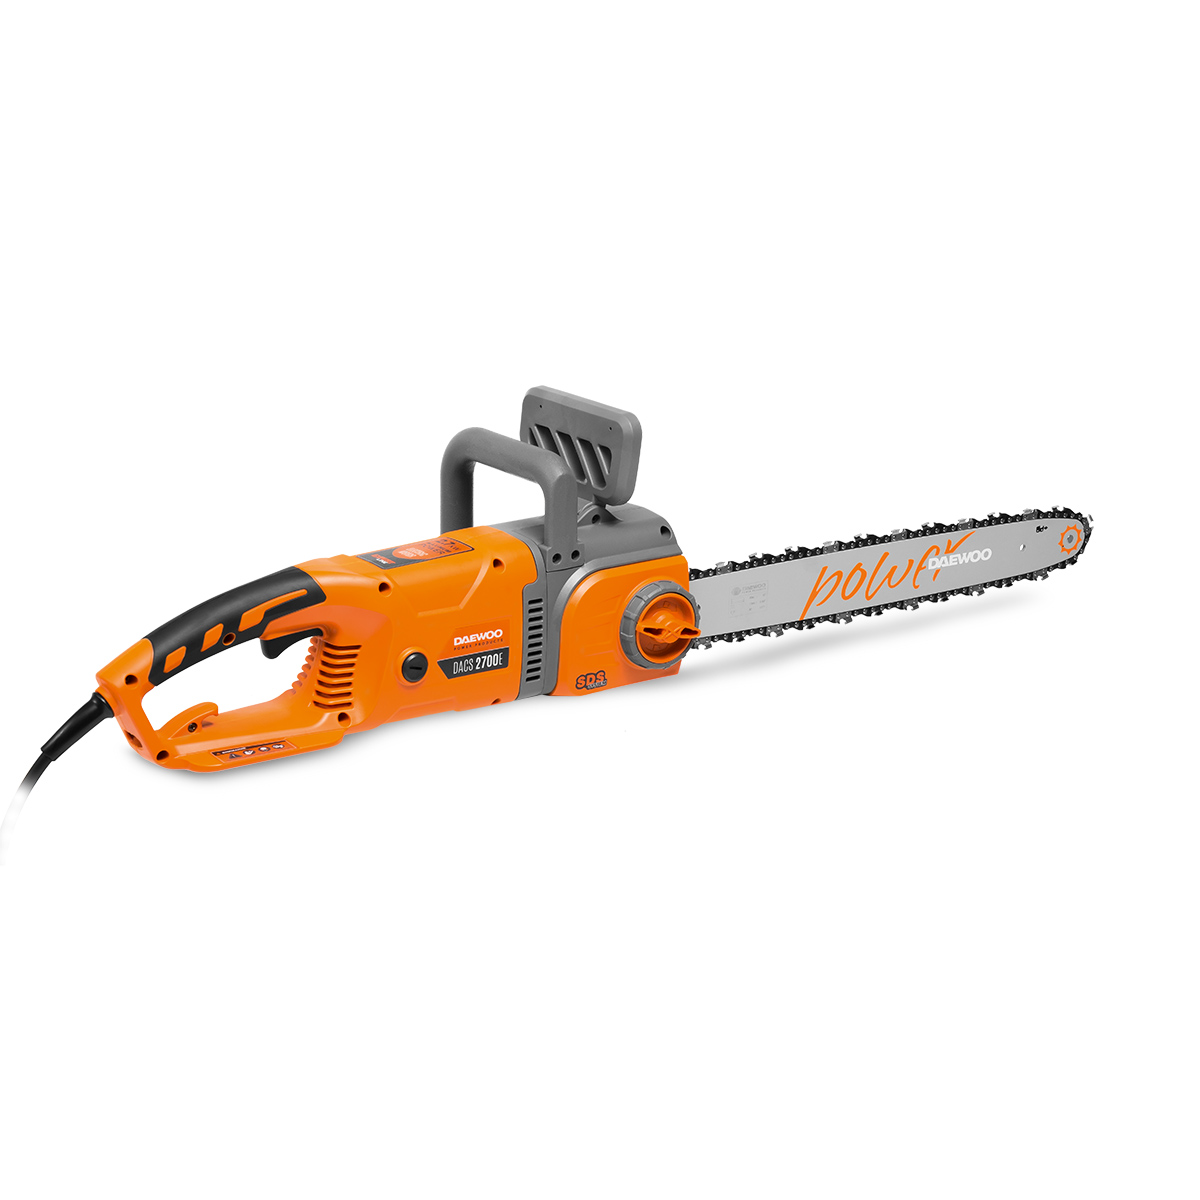 Electric Chainsaw Daewoo DACS 2700E